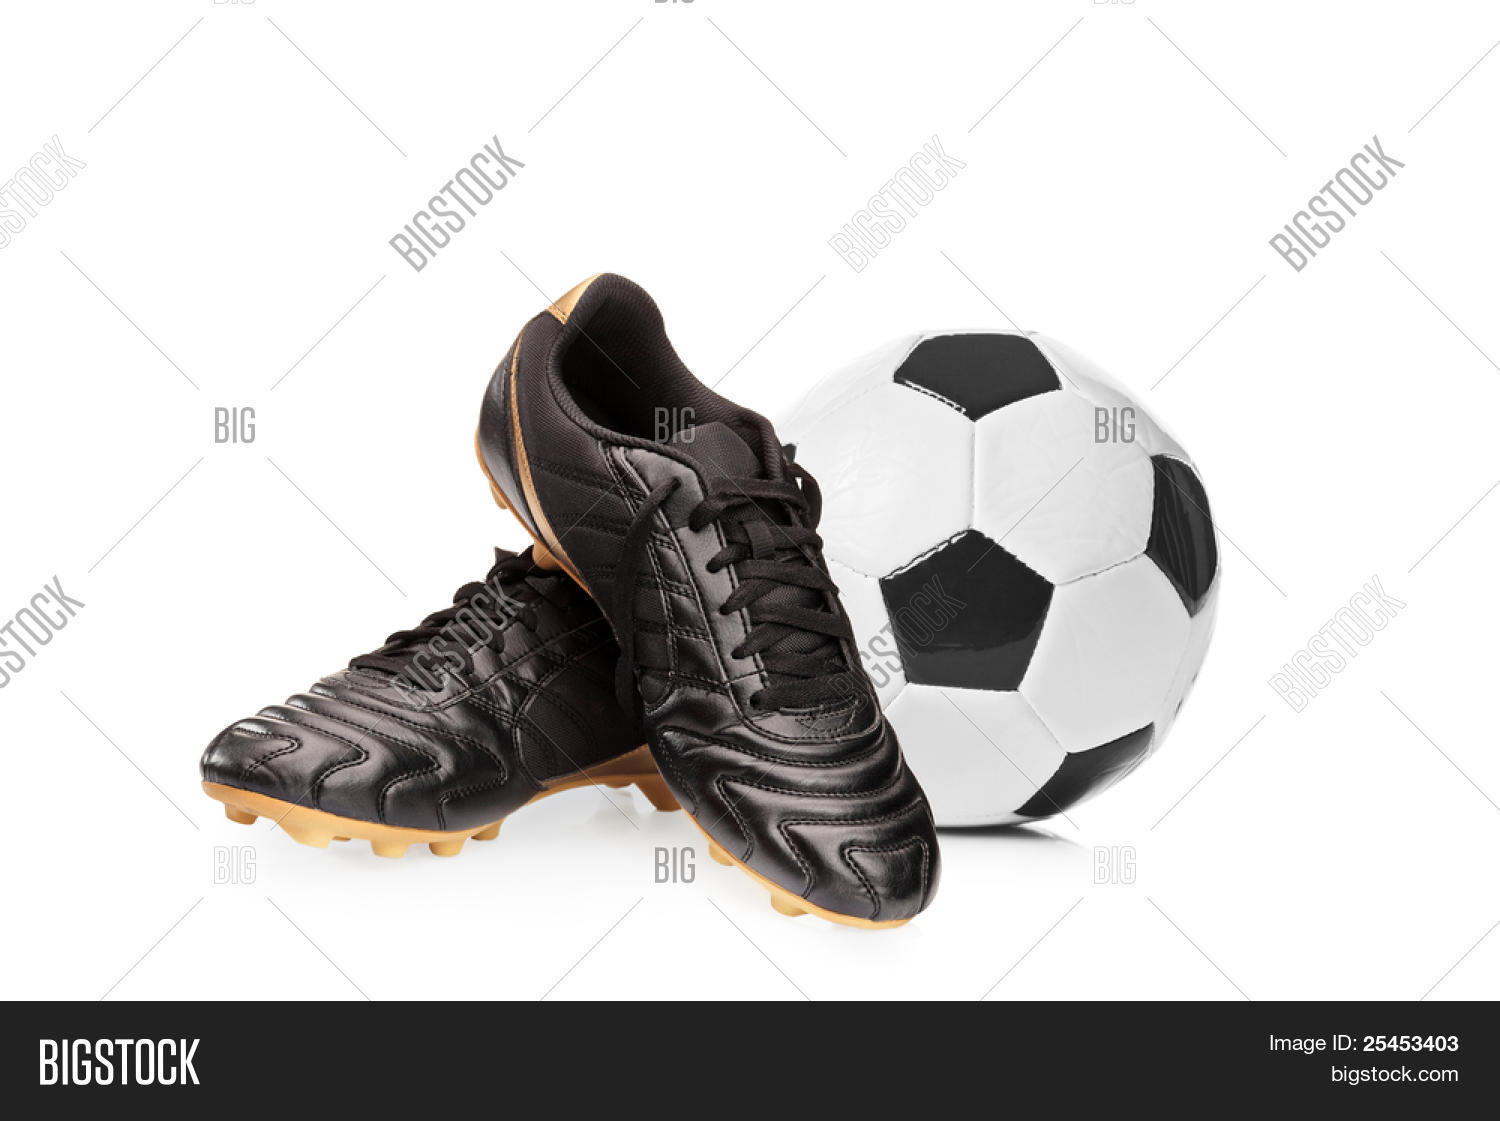 ab1d57b66b8 Football shoes and a football isolated on white background